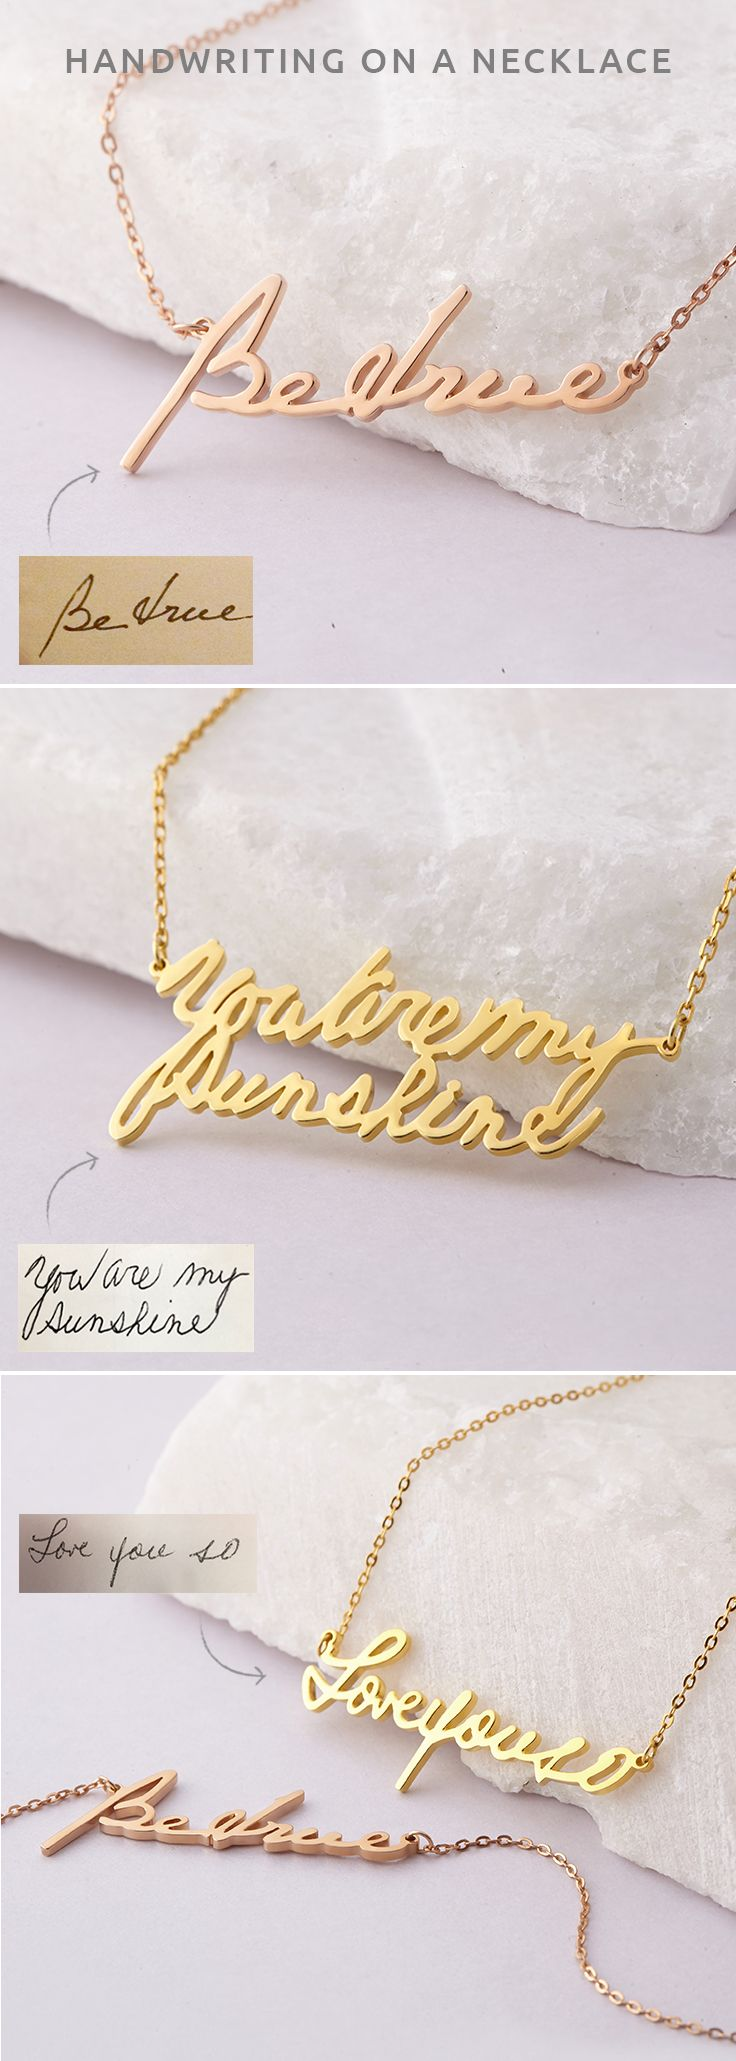 Necklace with handwriting • Jewelry with handwriting • gold handwriting necklace • necklace for girlfriend • best friend gifts • christmas presents for mom • birthday gift for mother in law • personalized gifts for her • Custom handwriting necklace • Handwriting gift • Memorial necklace for mom • Keepsake jewelry • Condolence Jewelry in Sterling Silver • Sympathy gift • bridesmaid gift ideas • gifts for bridesmaids • best mother in law gifts for a mother in law • engagement gifts from…